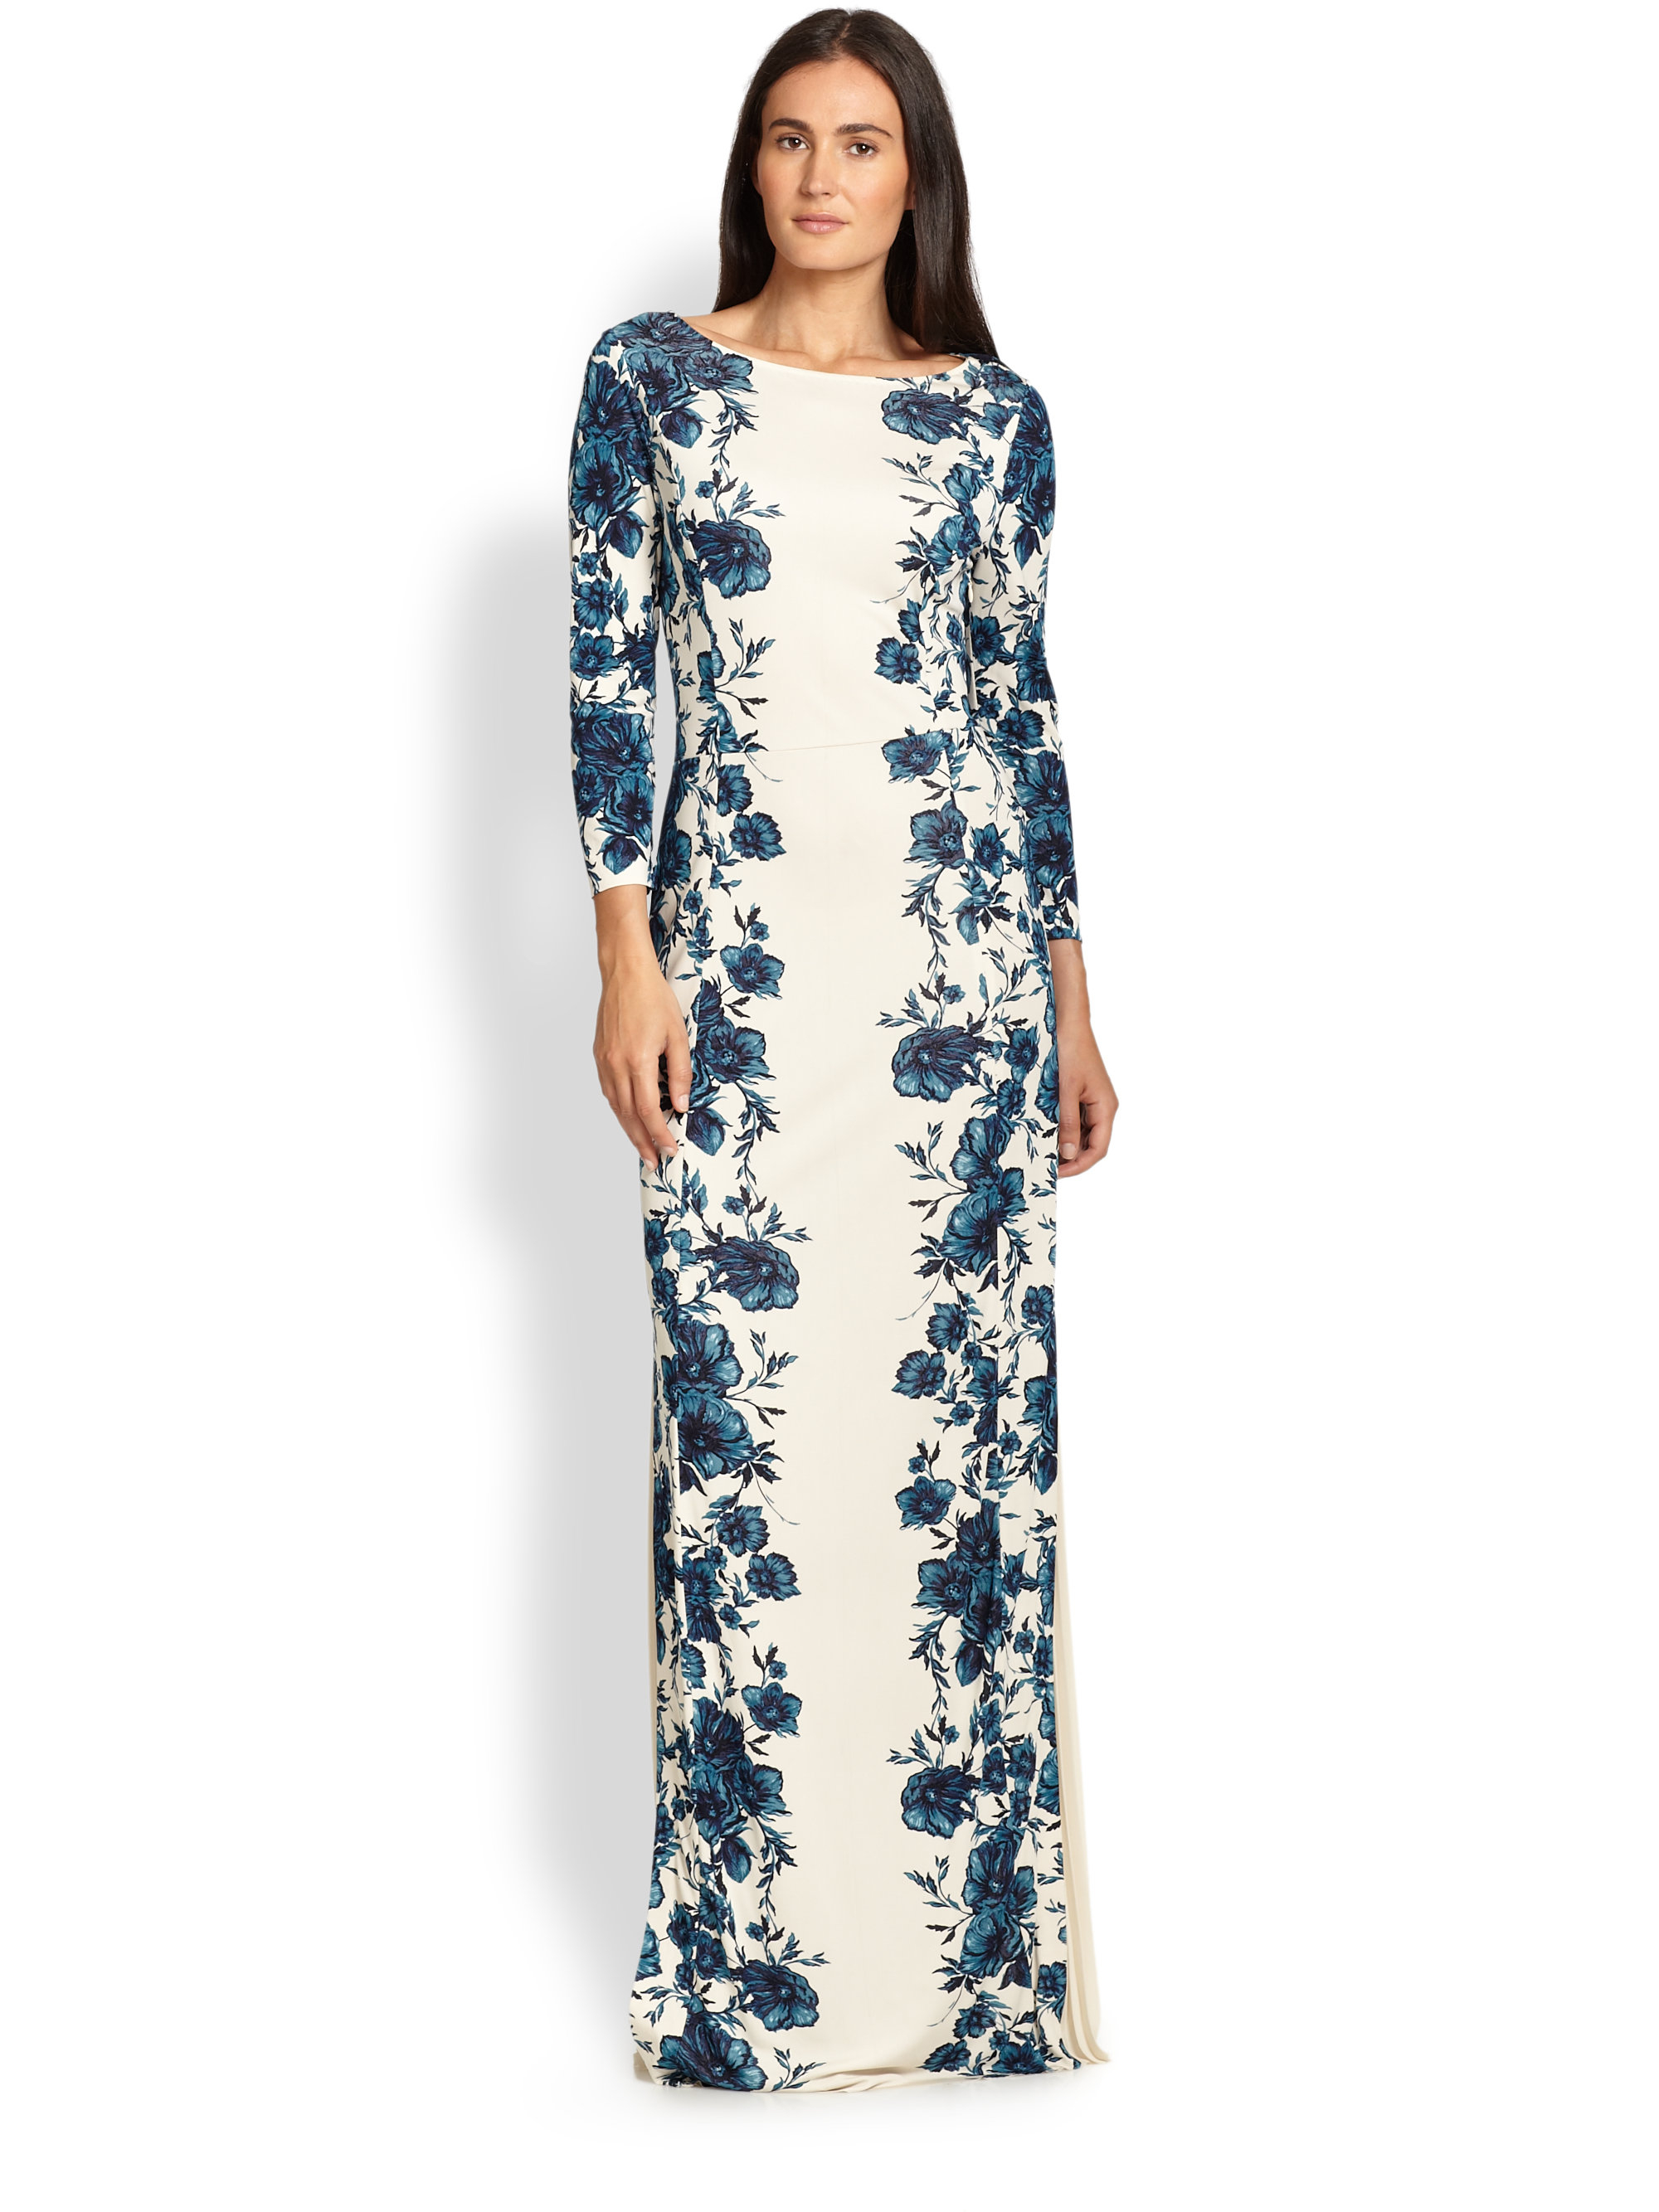 Tory burch Stacy Maxi Dress in Blue | Lyst